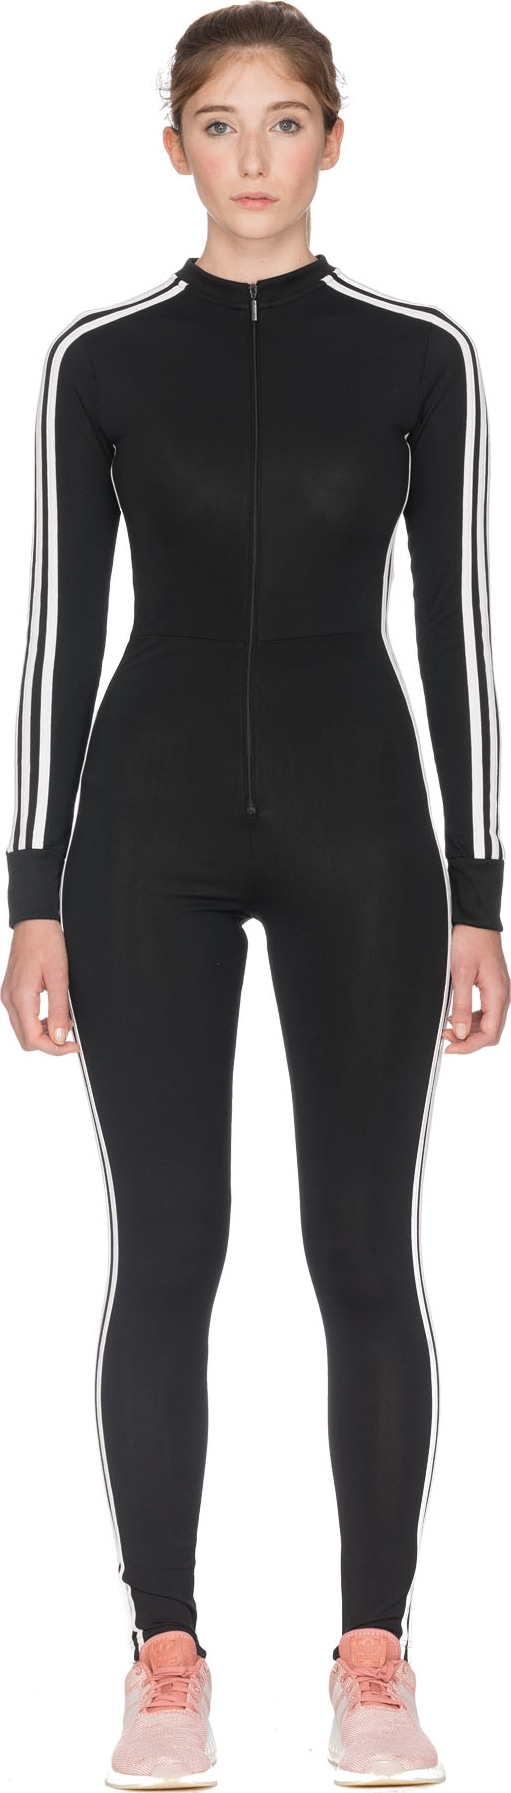 d5da11c2de6c adidas Originals  Stage Suit - Black